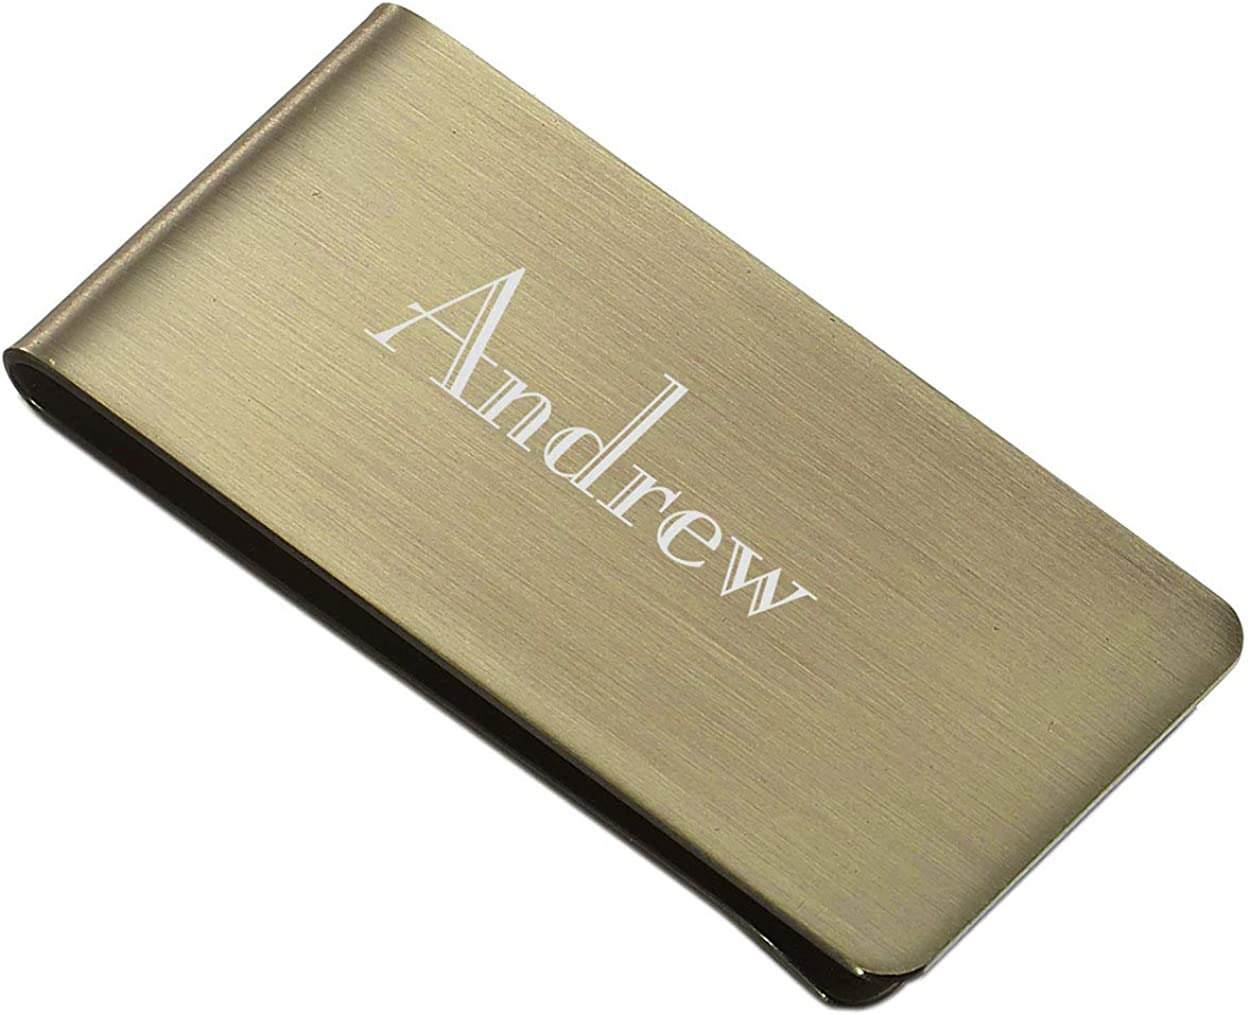 Personalized Visol Archduke Antique Brass Stainless Steel Money Clip with Free Laser Engraving